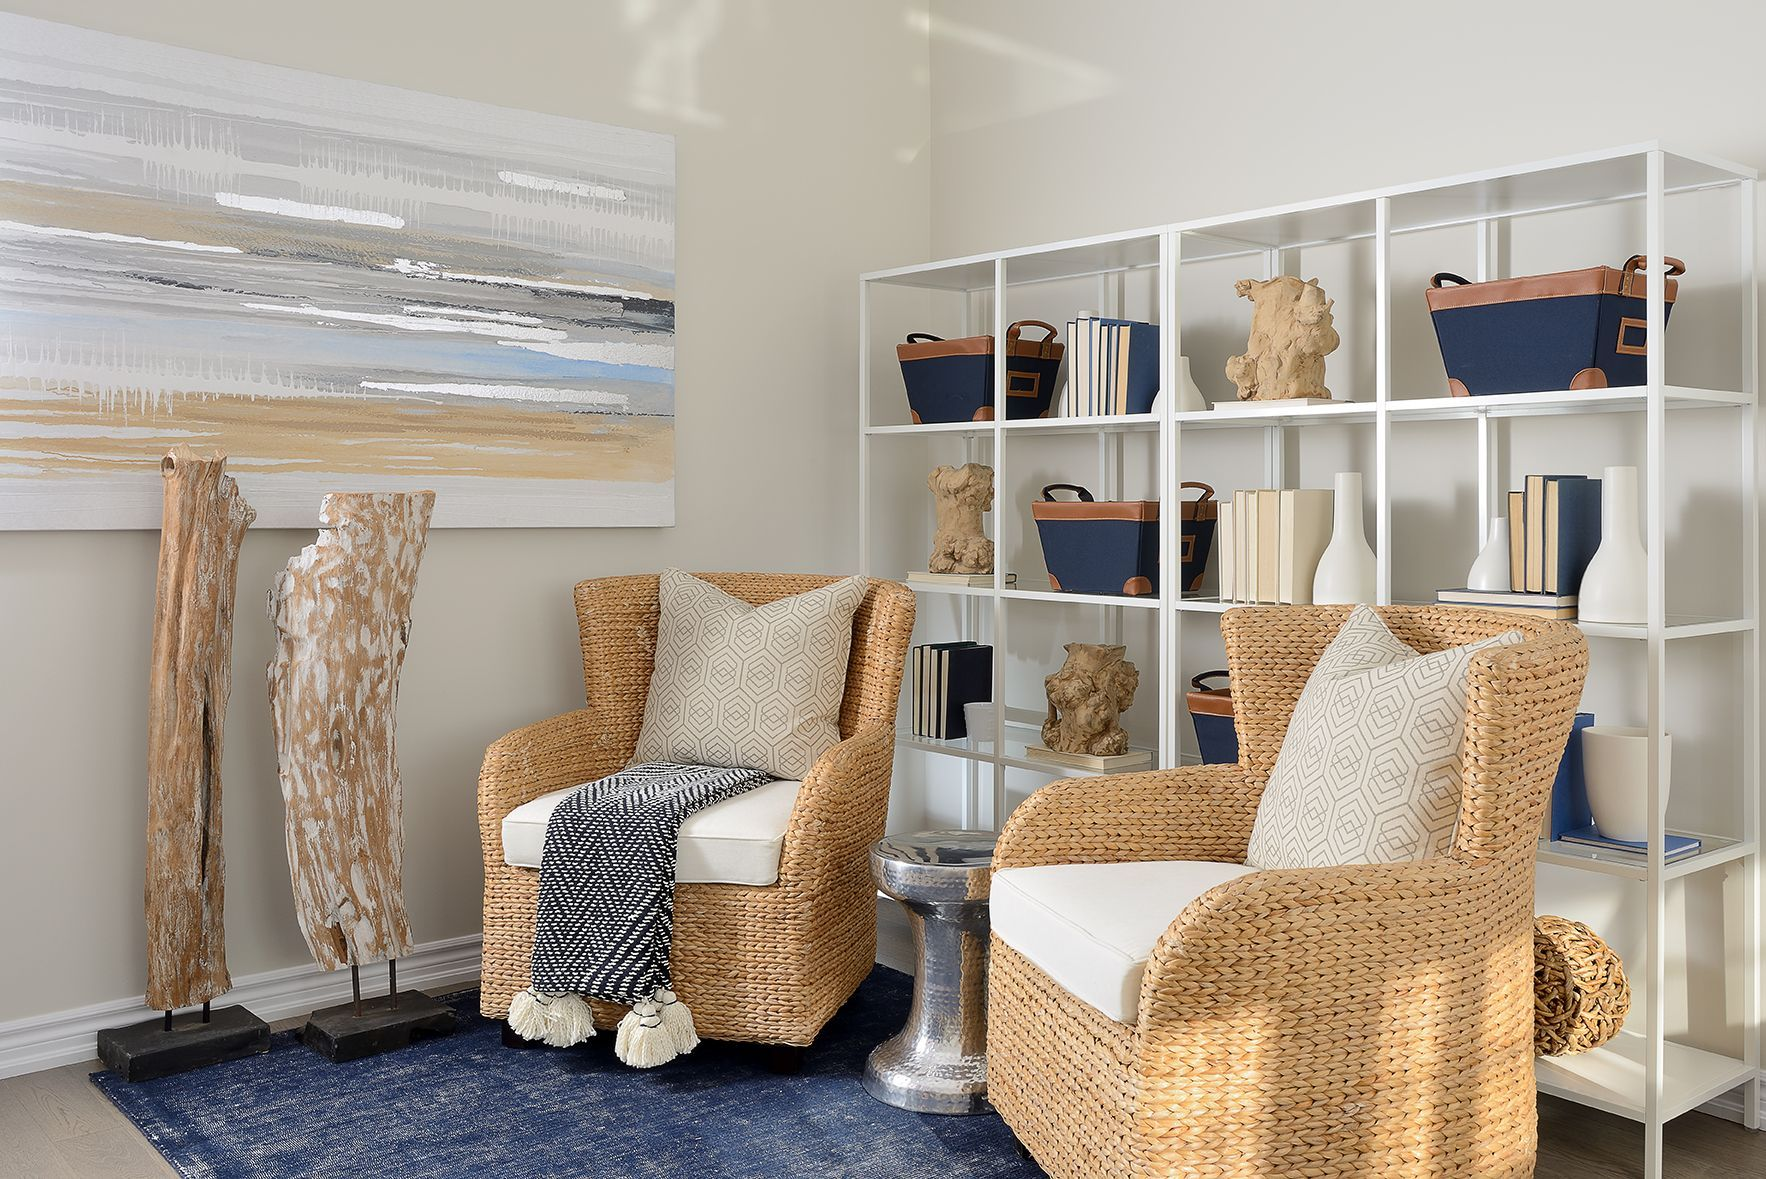 coastal chic furniture. Coastal Chic Decor Style. Find Out How To Get The Look. Furniture